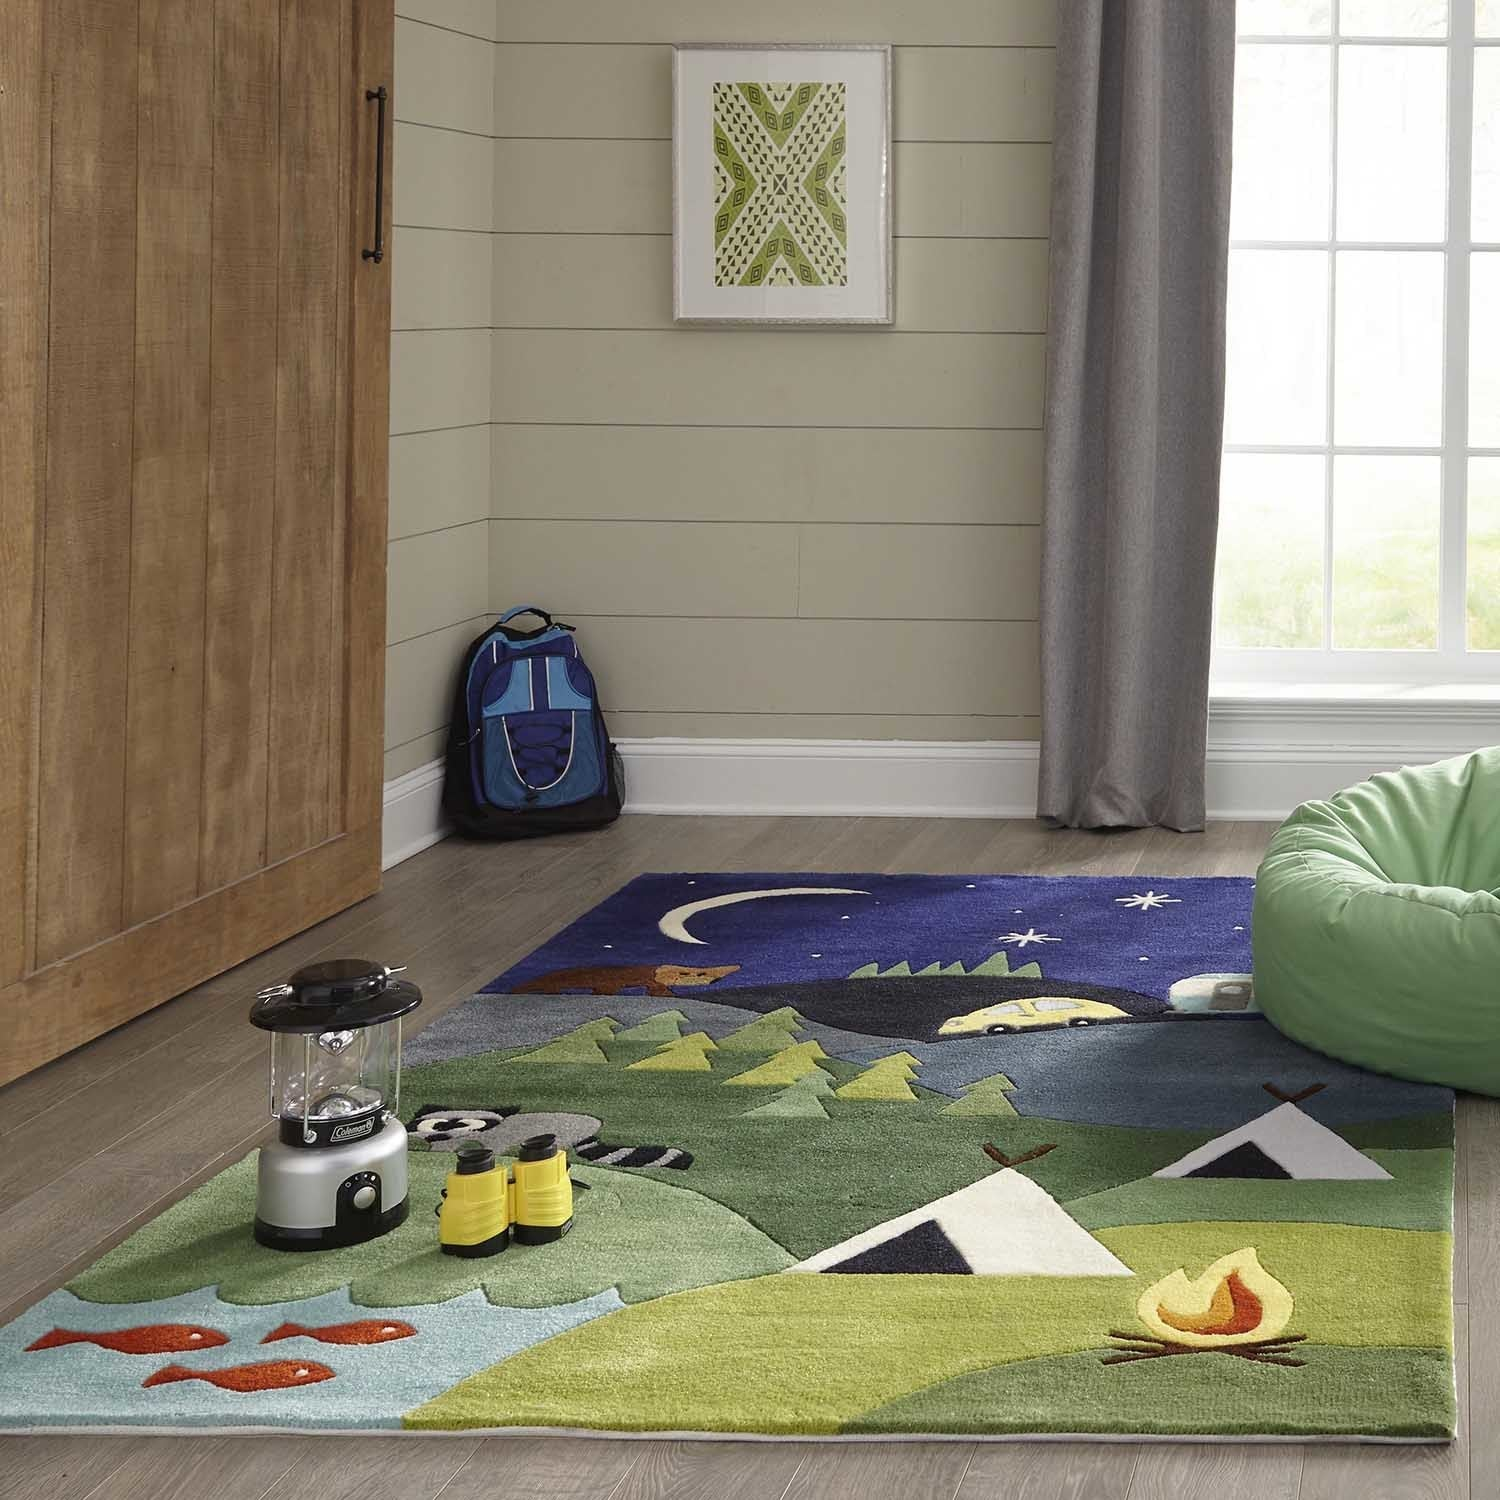 Momeni lil mo whimsy blue camping fun hand tufted and hand carved momeni lil mo whimsy blue camping fun hand tufted and hand carved rug 4 x 6 free shipping today overstock 18689713 dailygadgetfo Choice Image